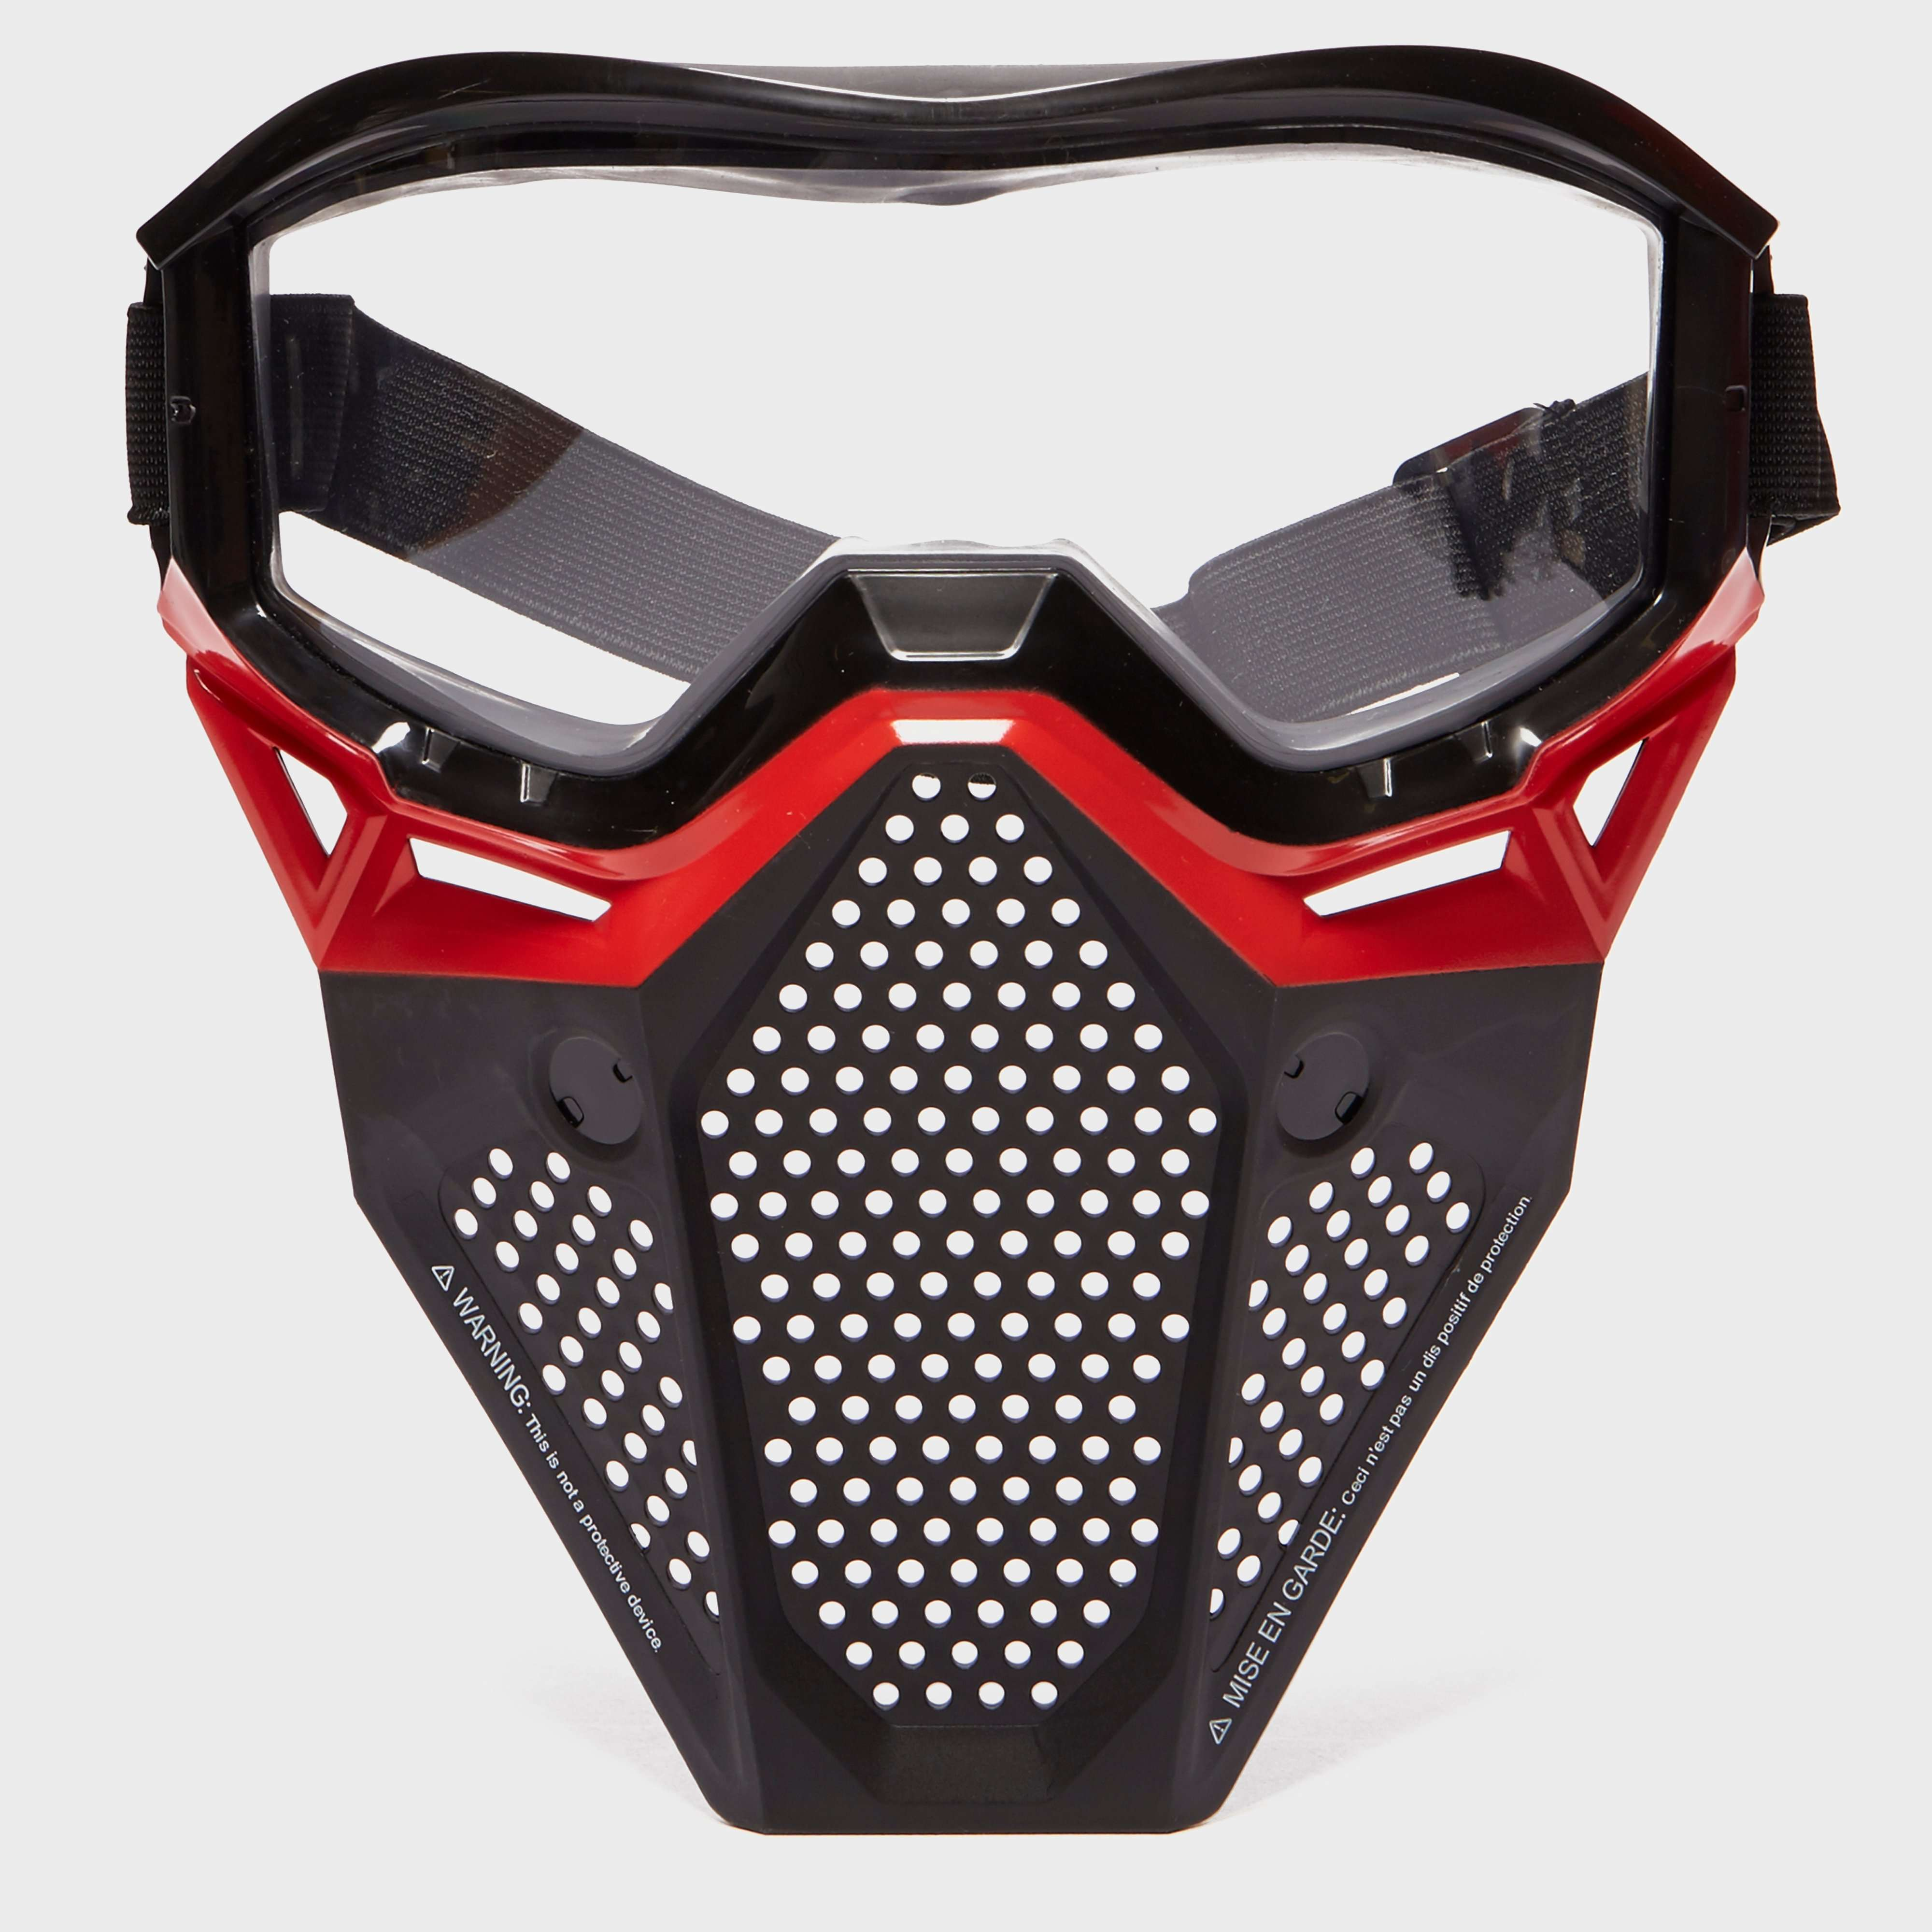 NERF Nerf Rival Face Mask (Red)